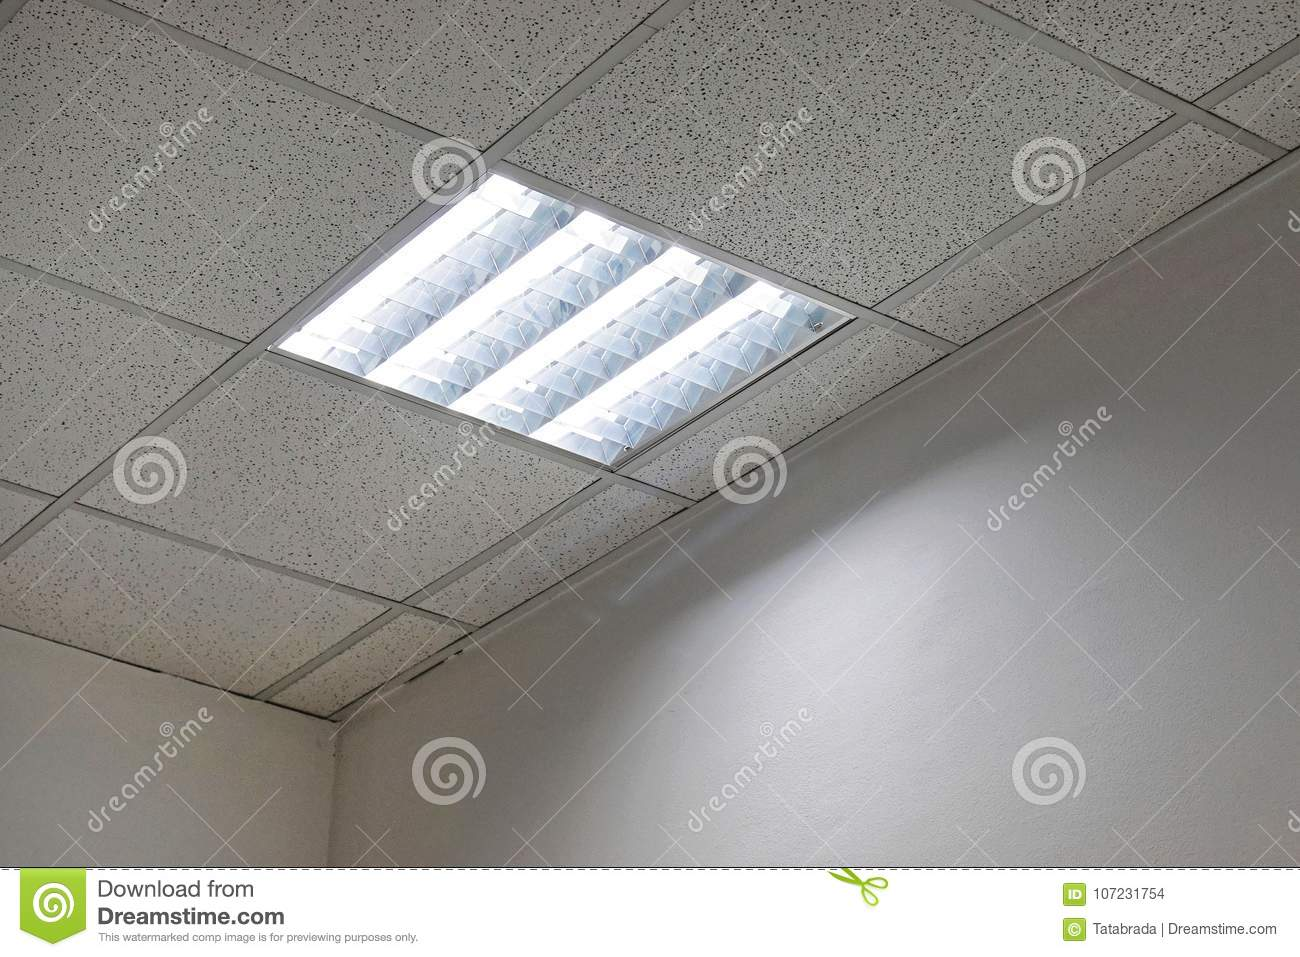 Office Ceiling Lamps Throughout Office Ceiling Lights Stock Photo Image Of Lamps Room 107231754